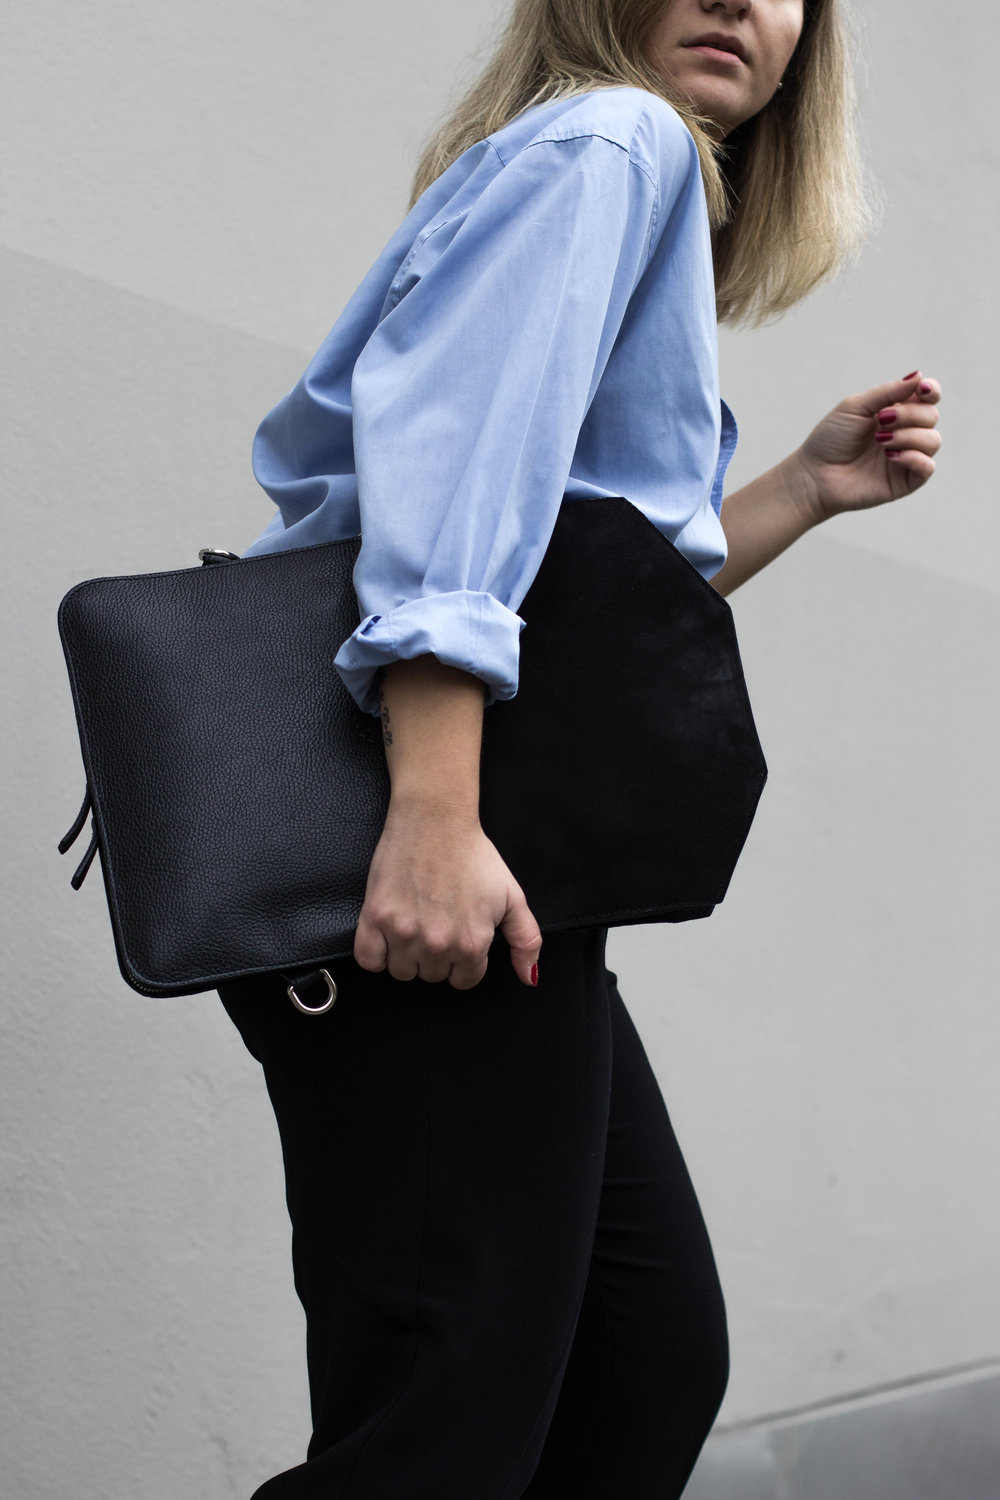 THE LAPTOP CASE FOR THOSE BUSINESS HOURS - WEARING// COAT CARLINGS / SHIRT VINTAGE / PANTS MANGO / BAG BUKVY